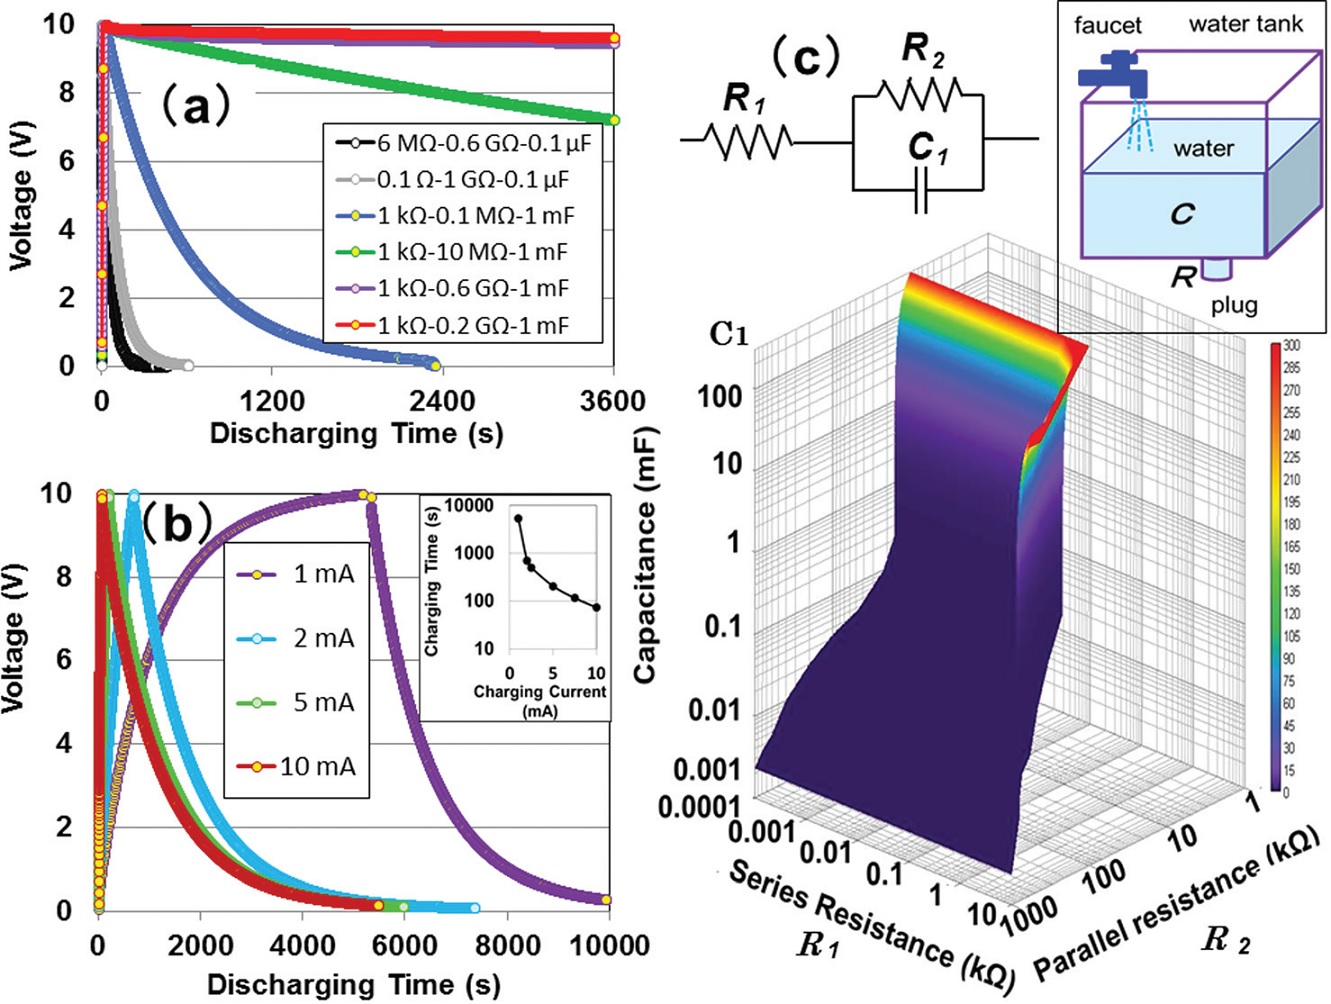 Can Capacitors In Electrical Circuits Provide Large Scale Energy Mobile Charger Circuit Diagram Cell Phones Schematic C Three Dimensional Funnel Shaped Surface Contour Displaying Rich Discharging After Complete Charging Credit Fukuhara Et Al